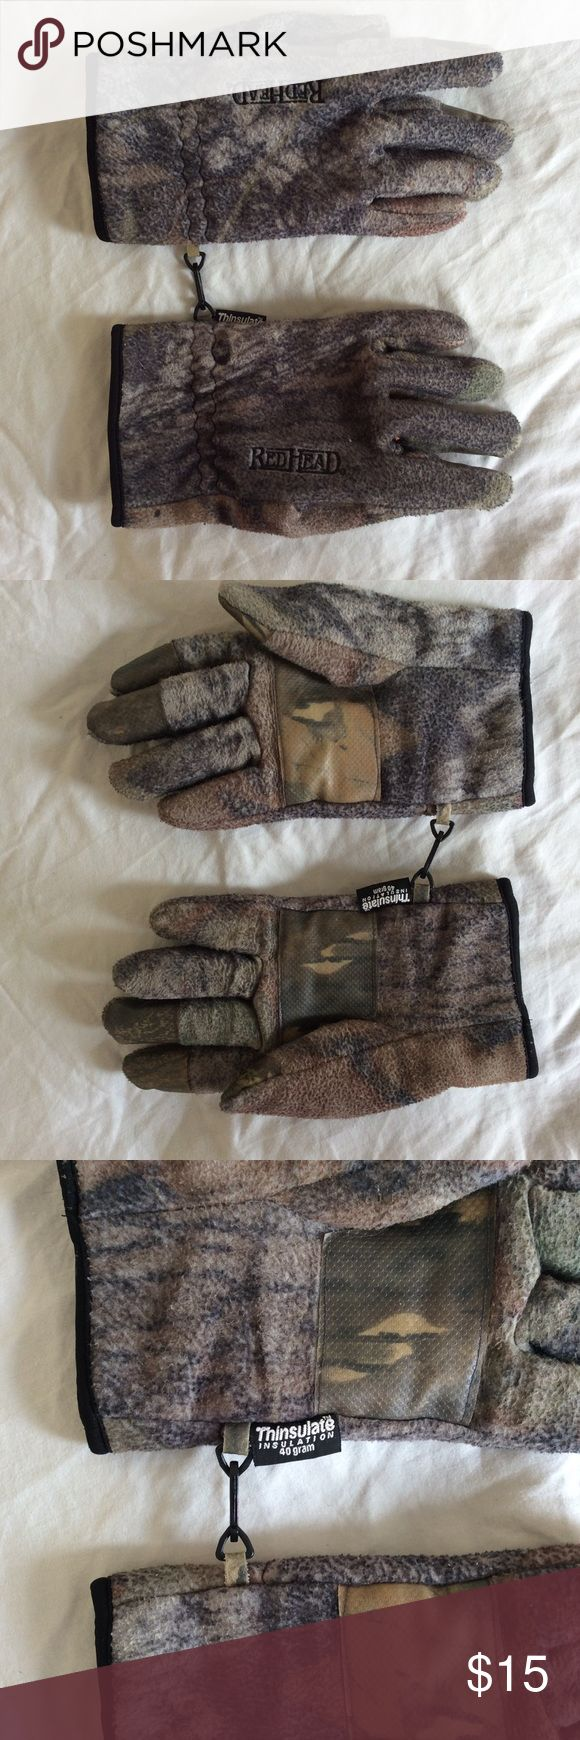 Redhead Camouflage Thinsulate Insulation Gloves Redhead Men's Camouflage Thinsulate Insulation 40 grams   EXCELLENT CONDITION!!!! Gloves are Large, Thinsulate Insulation 40 grams, Redhead logo on front of each glove Redhead Accessories Gloves